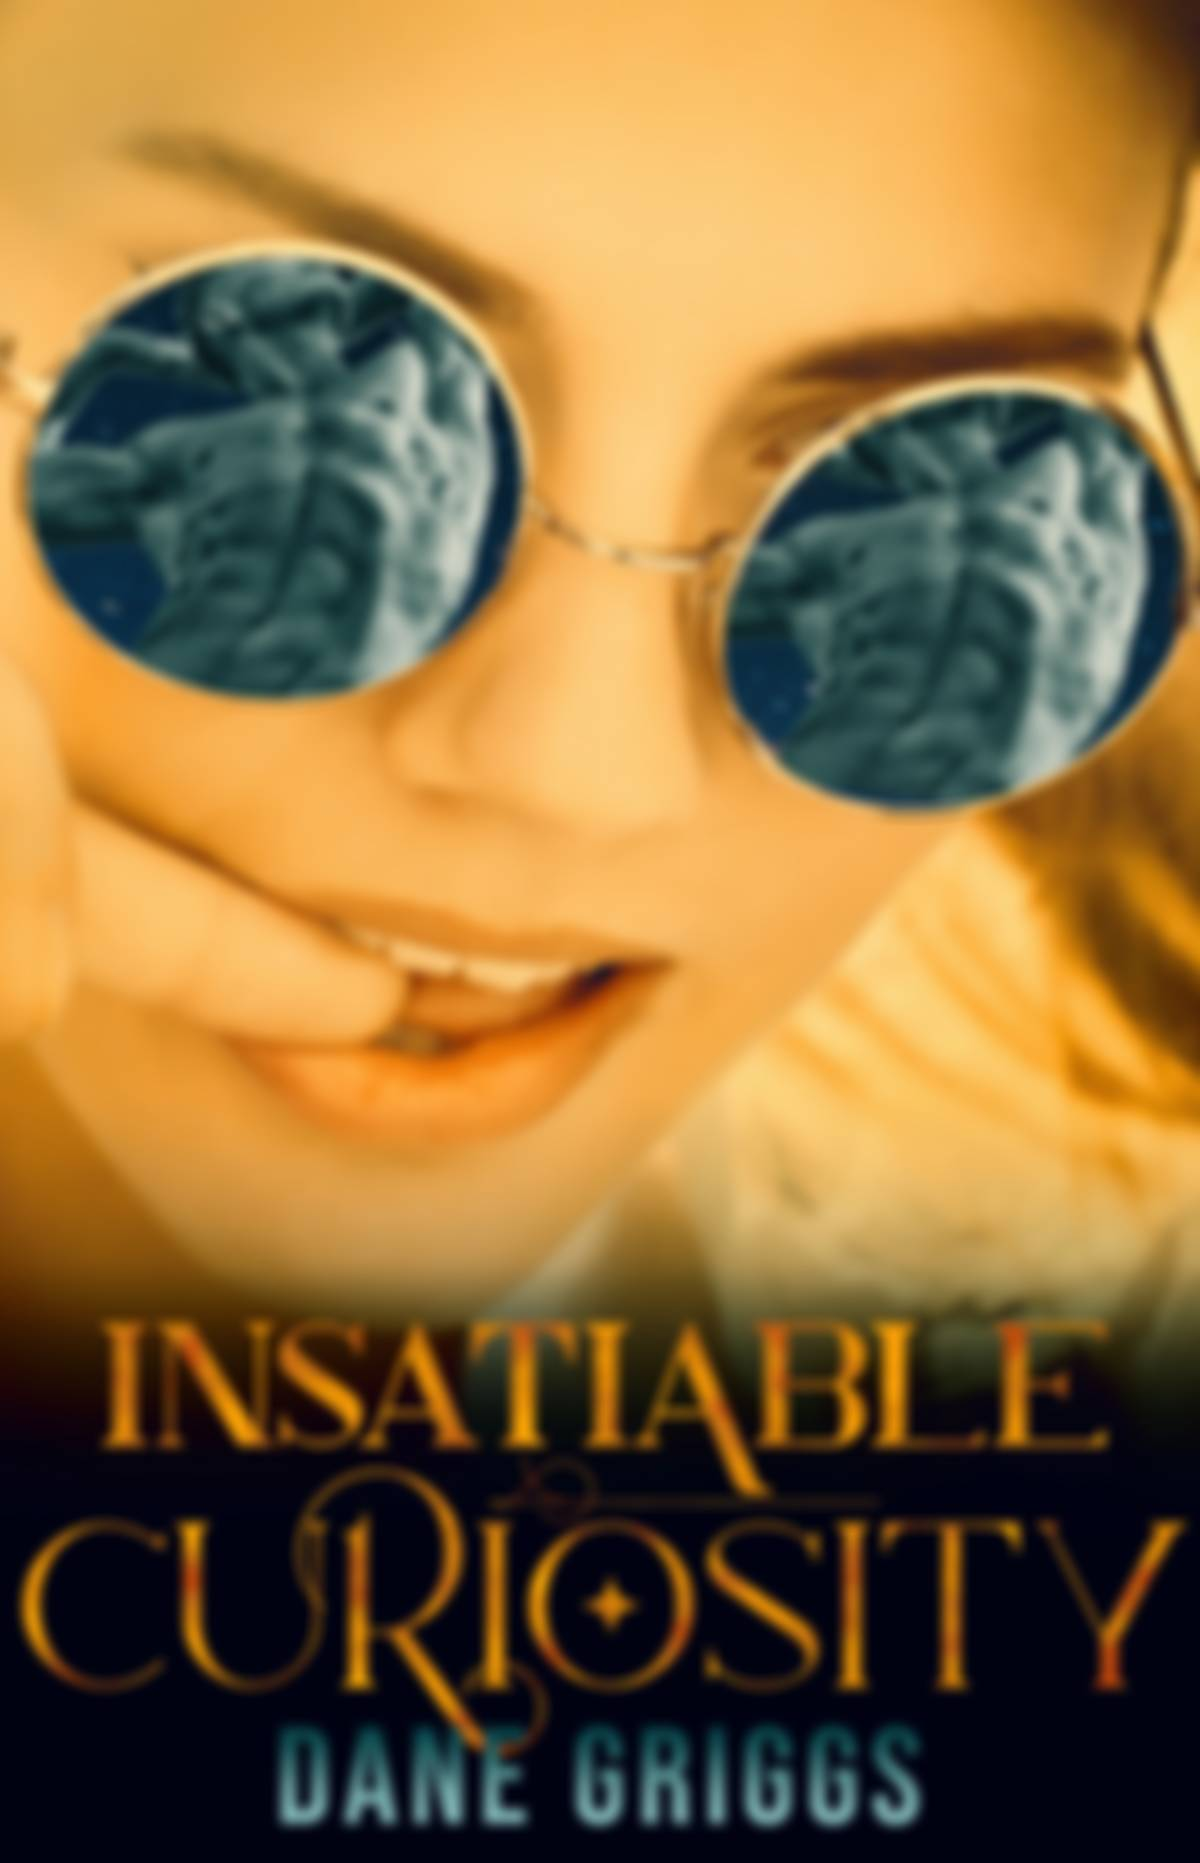 Book cover for Insatiable Curiosity by Dane Griggs. Featuring a woman biting her finger with a reflection of a male's torso in her sunglasses